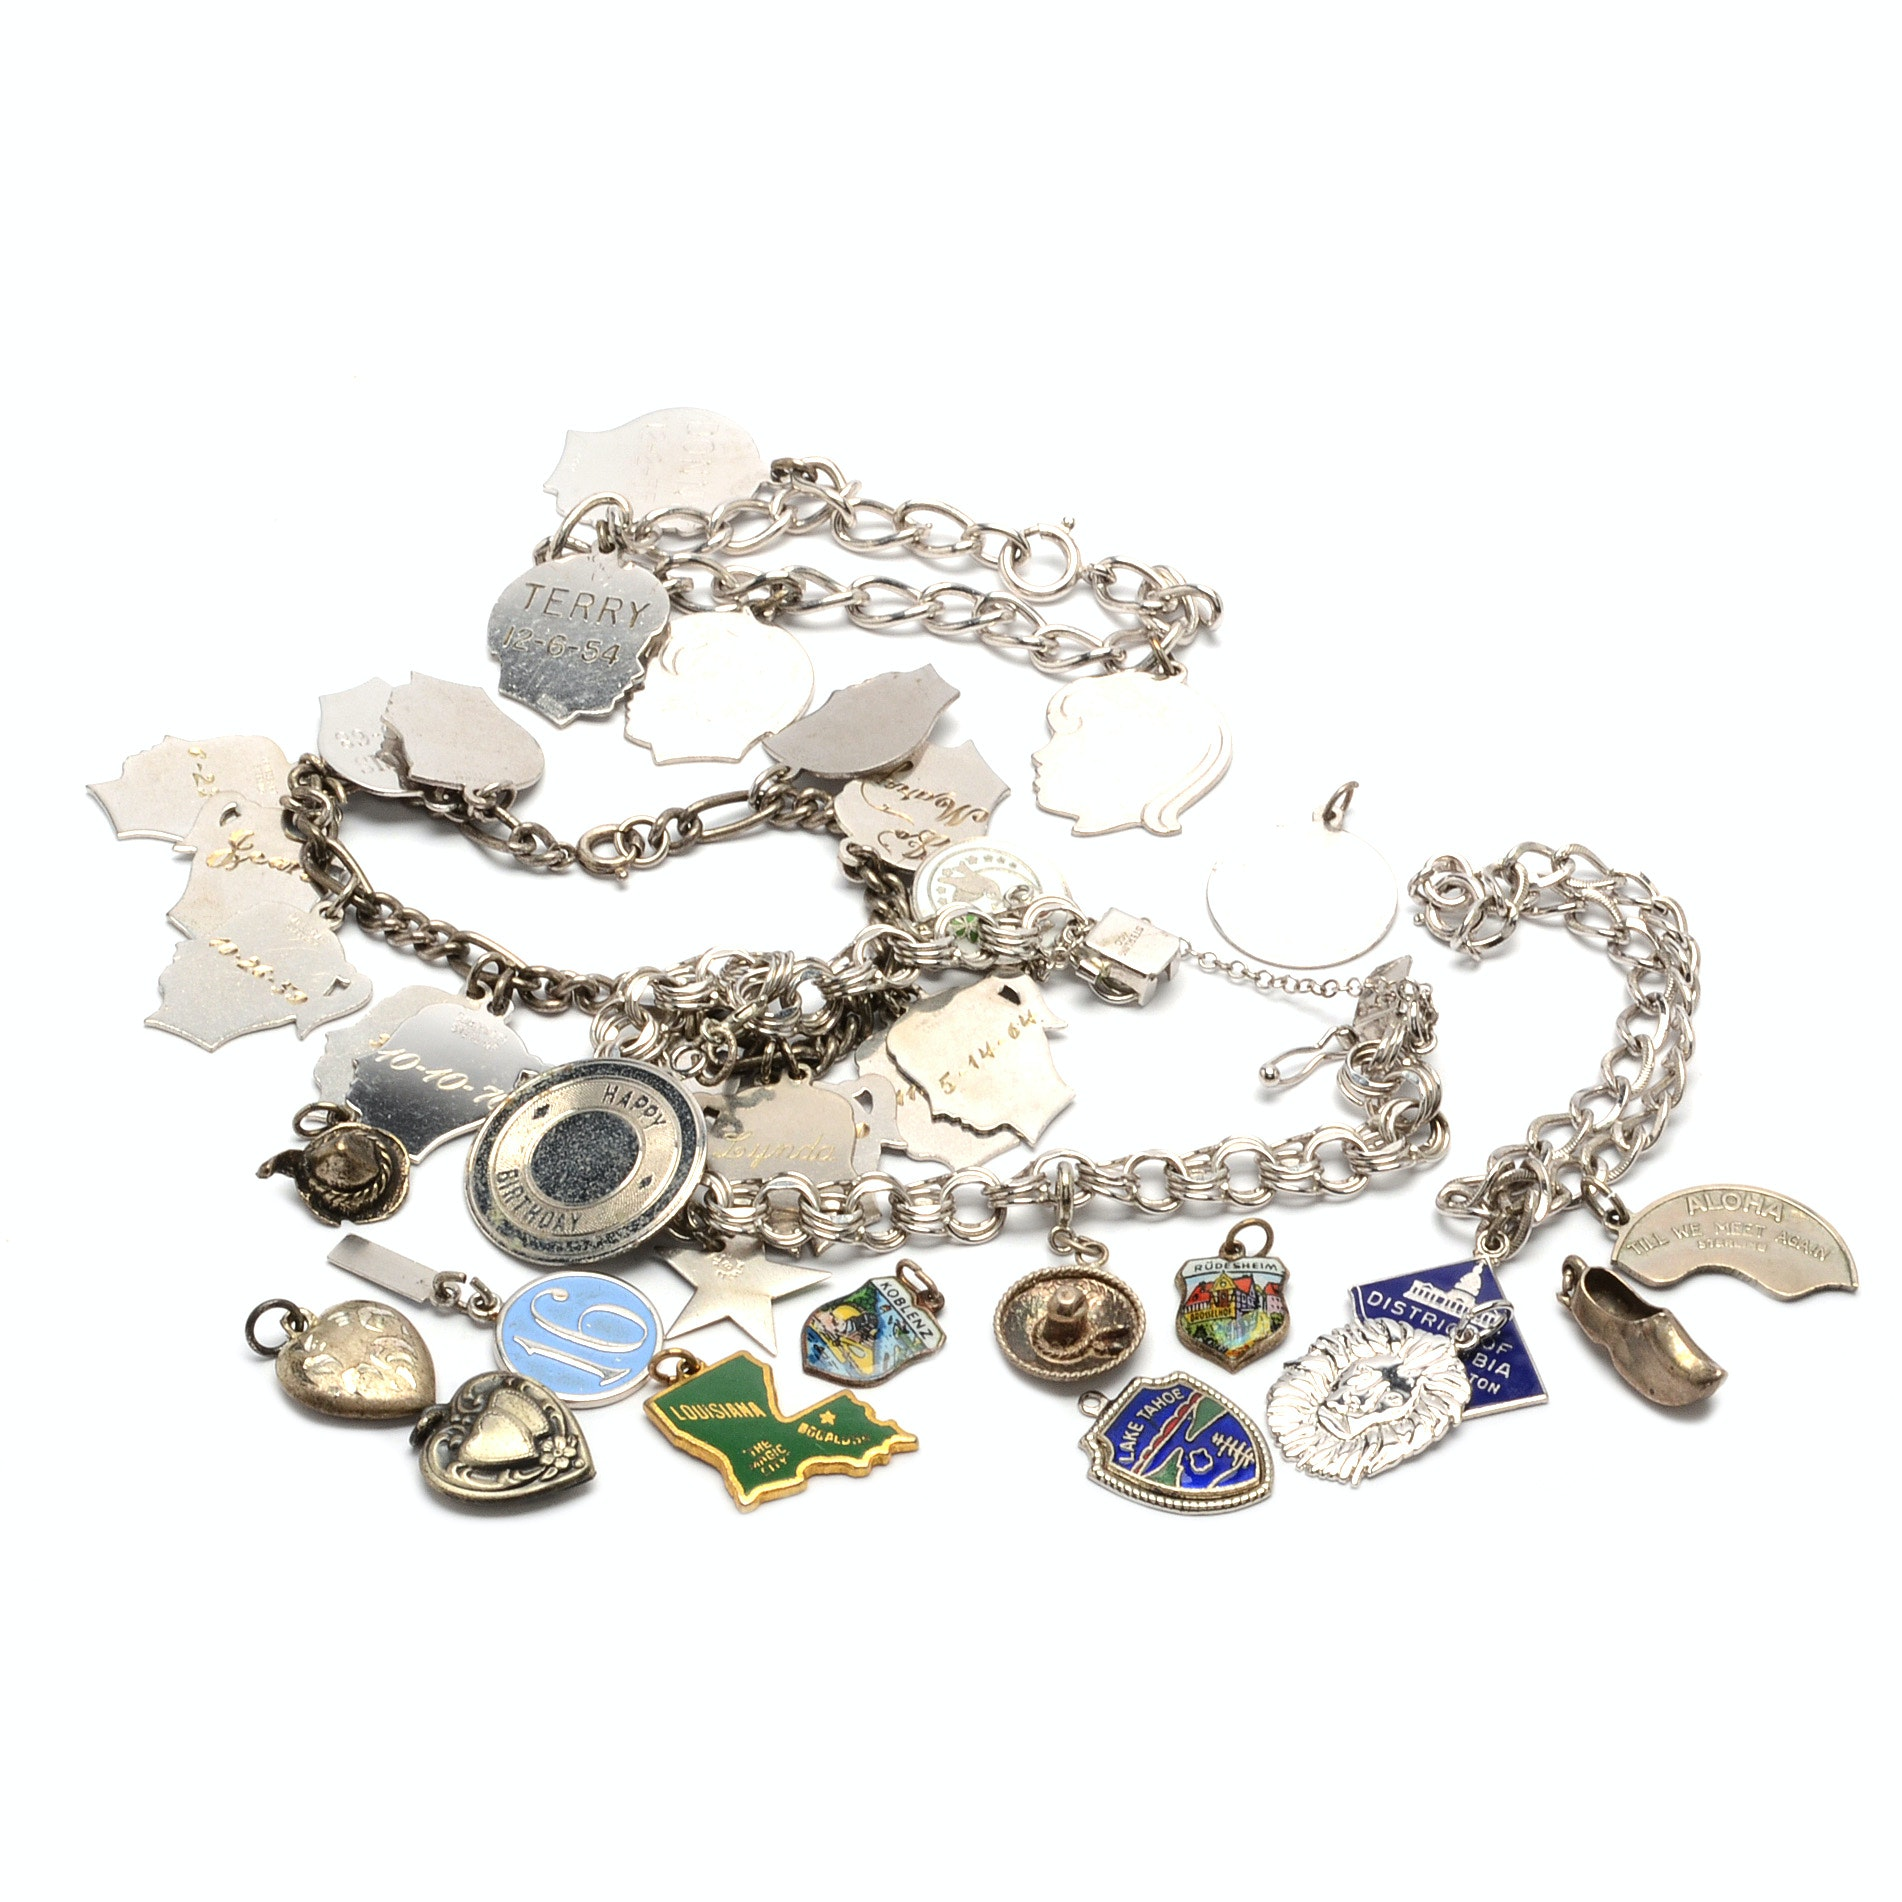 Sterling Silver Charm Bracelets and Charms